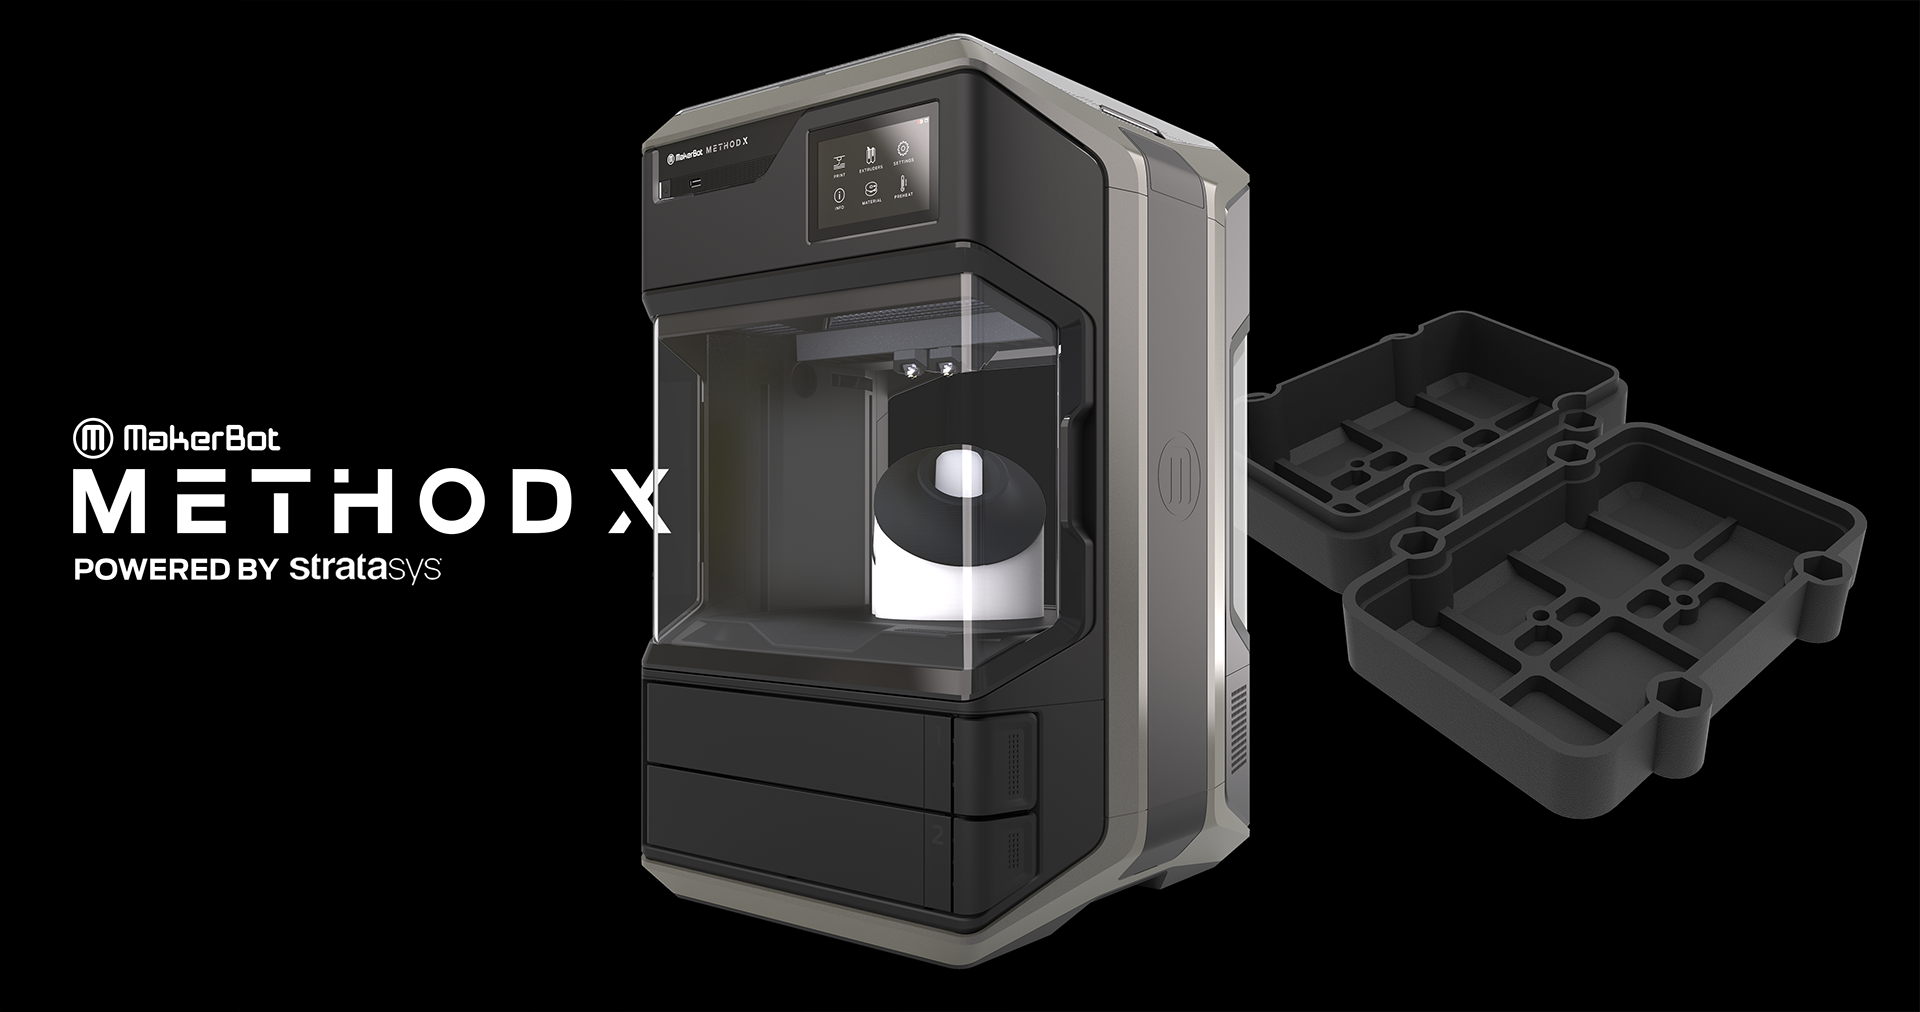 2018 3D Printing Industry Awards winners announced - 3D Printing